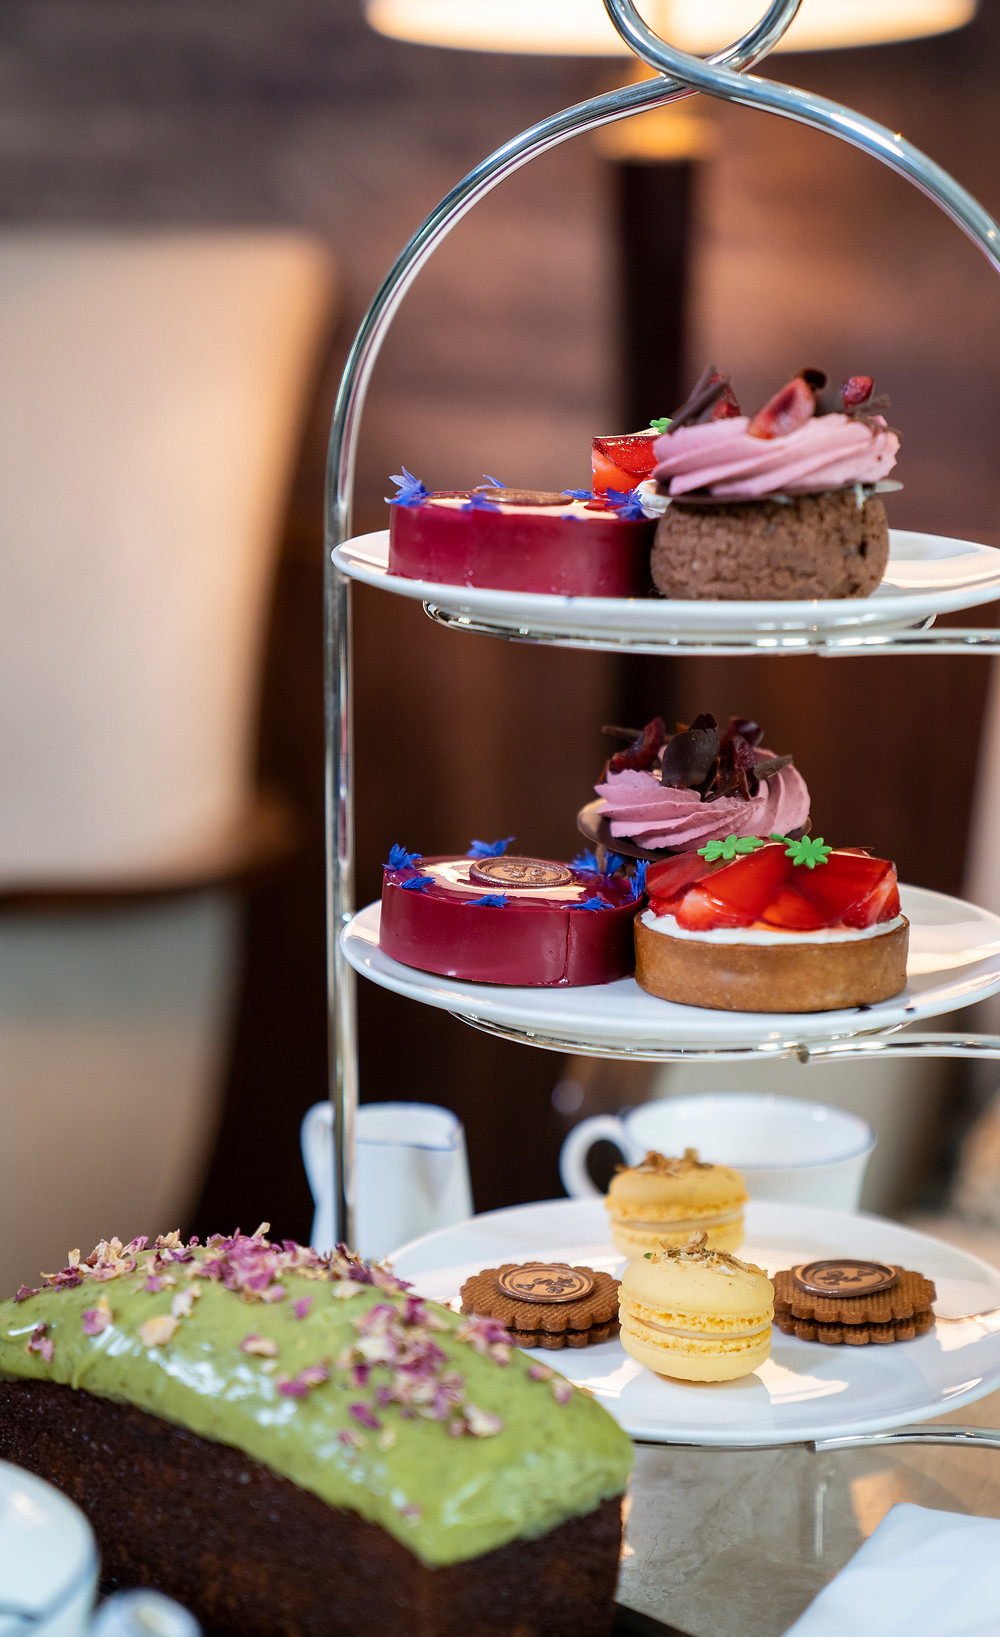 Afternoon Tea Pastries, London